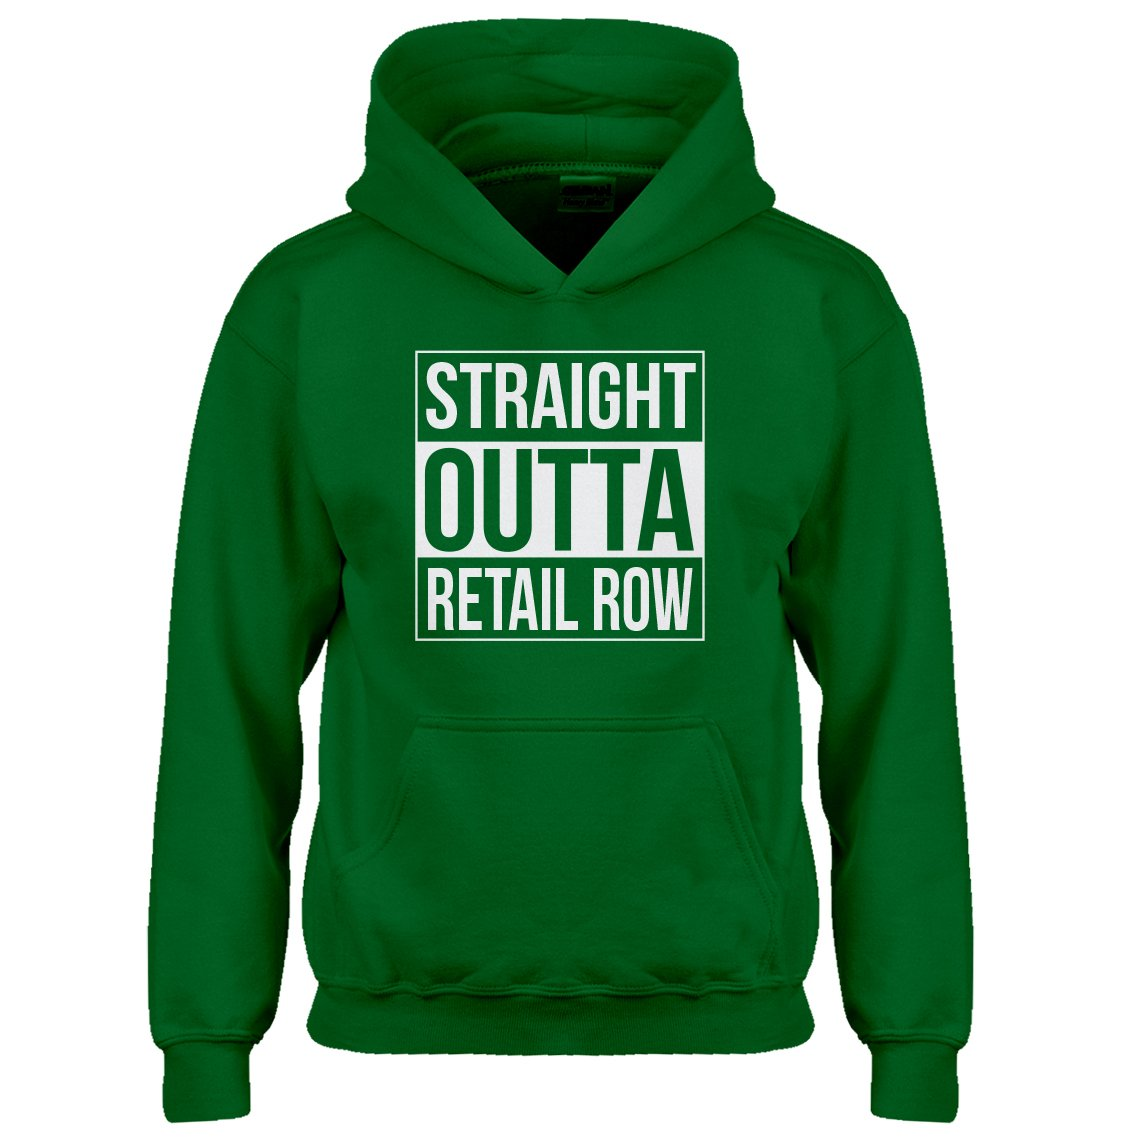 Indica Plateau Straight Outta Retail Row Kids Hoodie 3362-Z